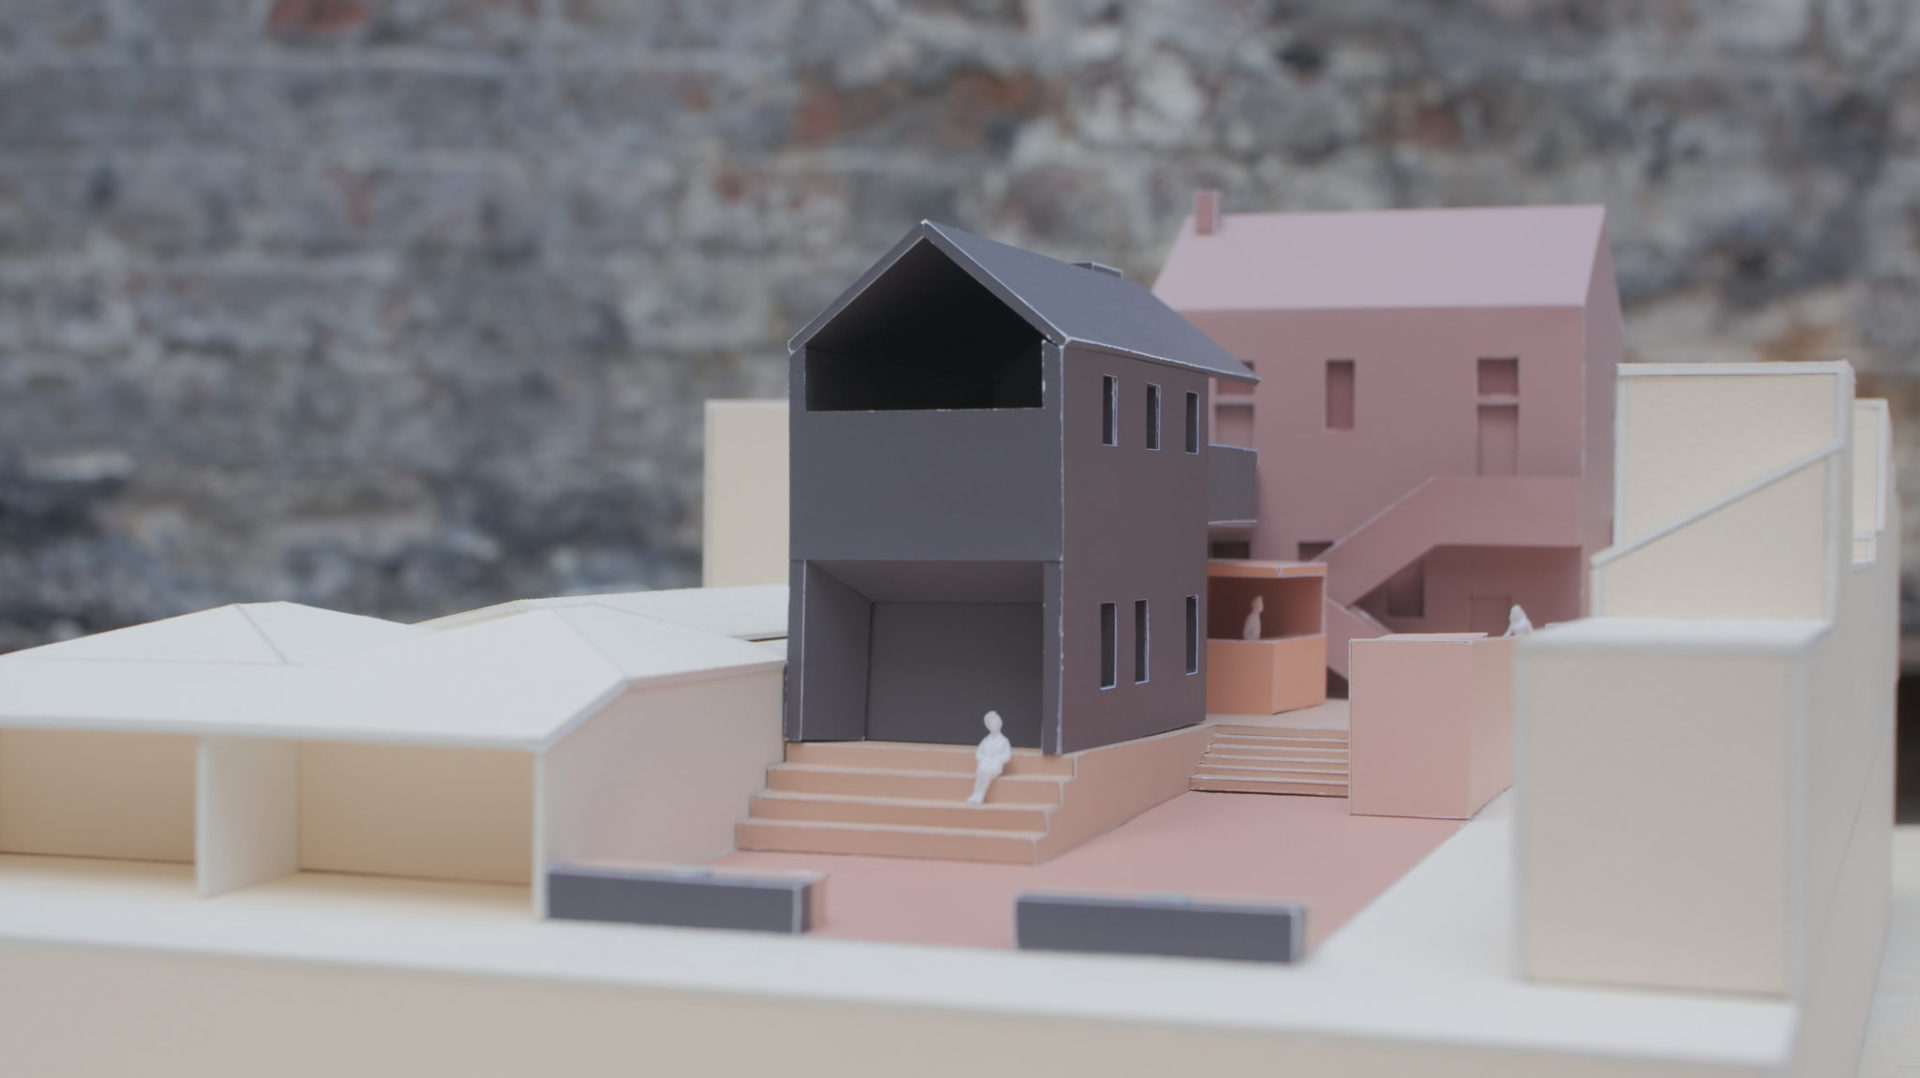 Theatre design model side/front view